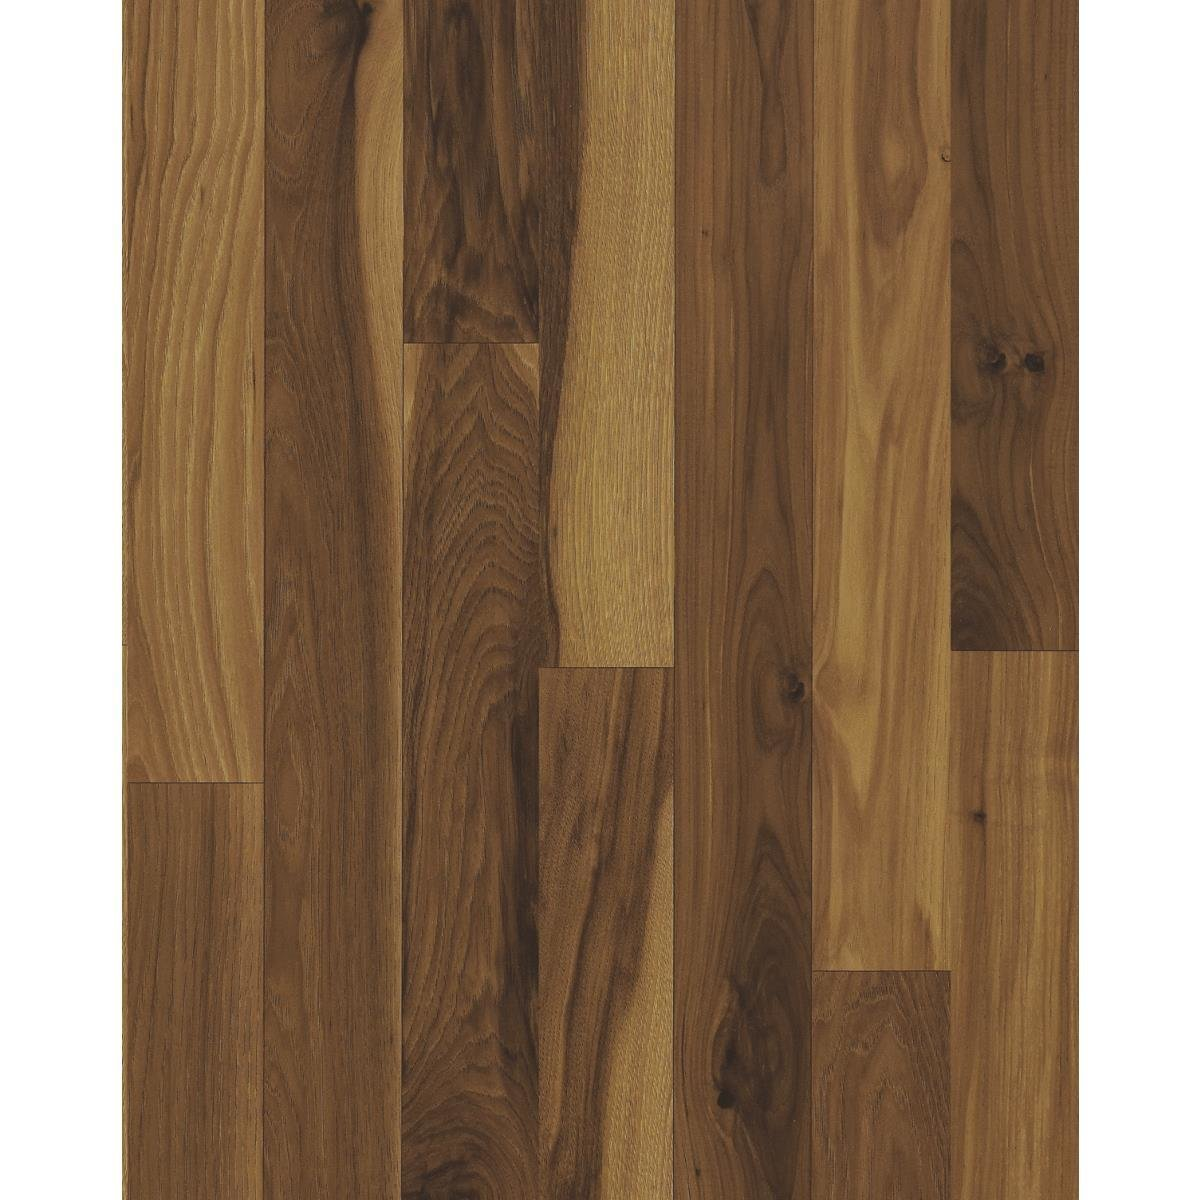 Dark Add To Cart Shaw Hickory Wood Plank Laminate Ing Capitol City Lumber Hickory Wood S Tile Hickory Wood S Oak Cabinets houzz 01 Hickory Wood Floors